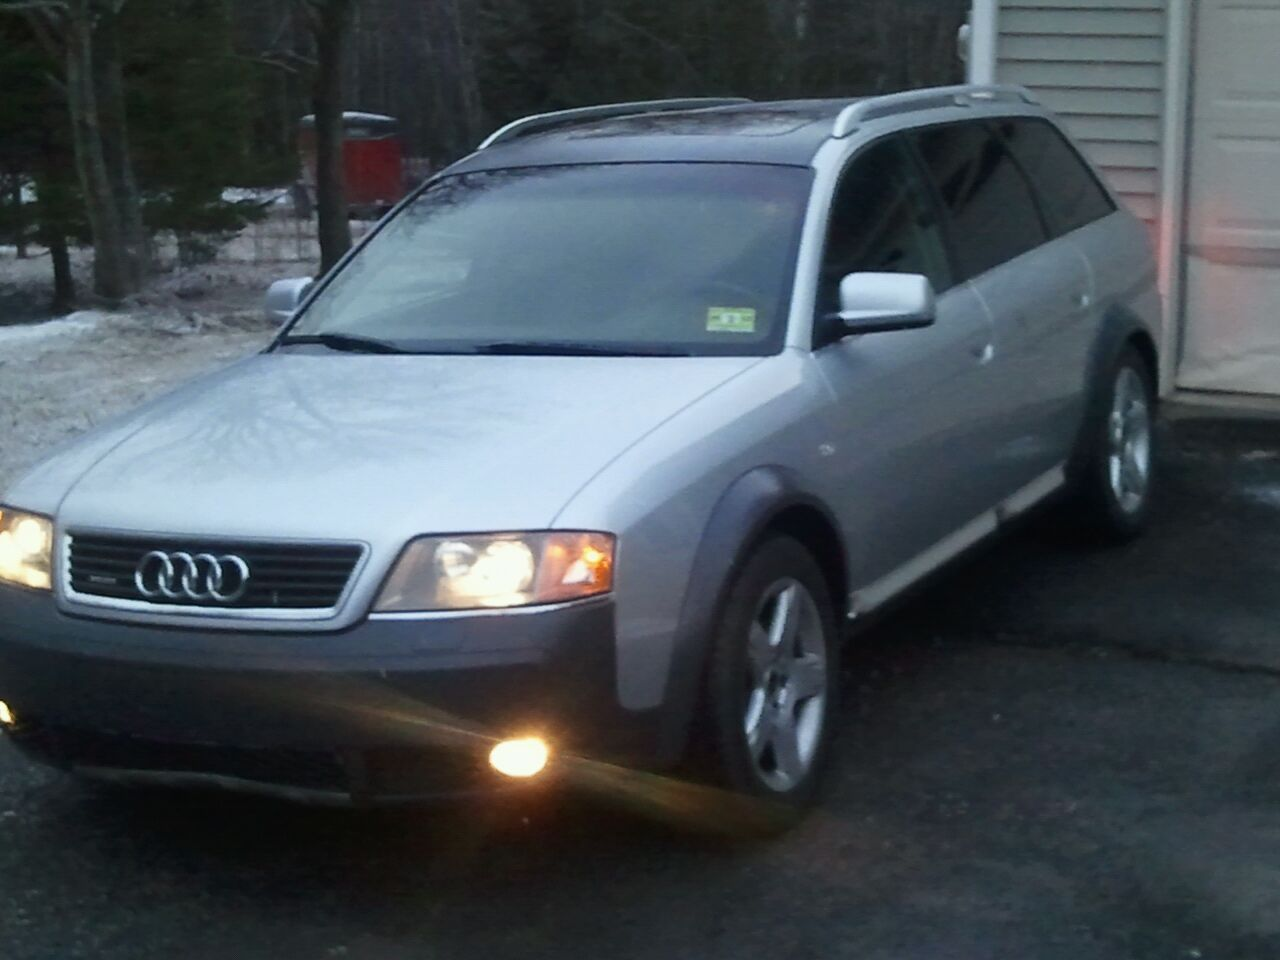 2002 Audi Allroad Quattro 4 Dr Turbo AWD Wagon, Picture of 2002 Audi allroad quattro 4 Dr Turbo AWD Wagon, exterior